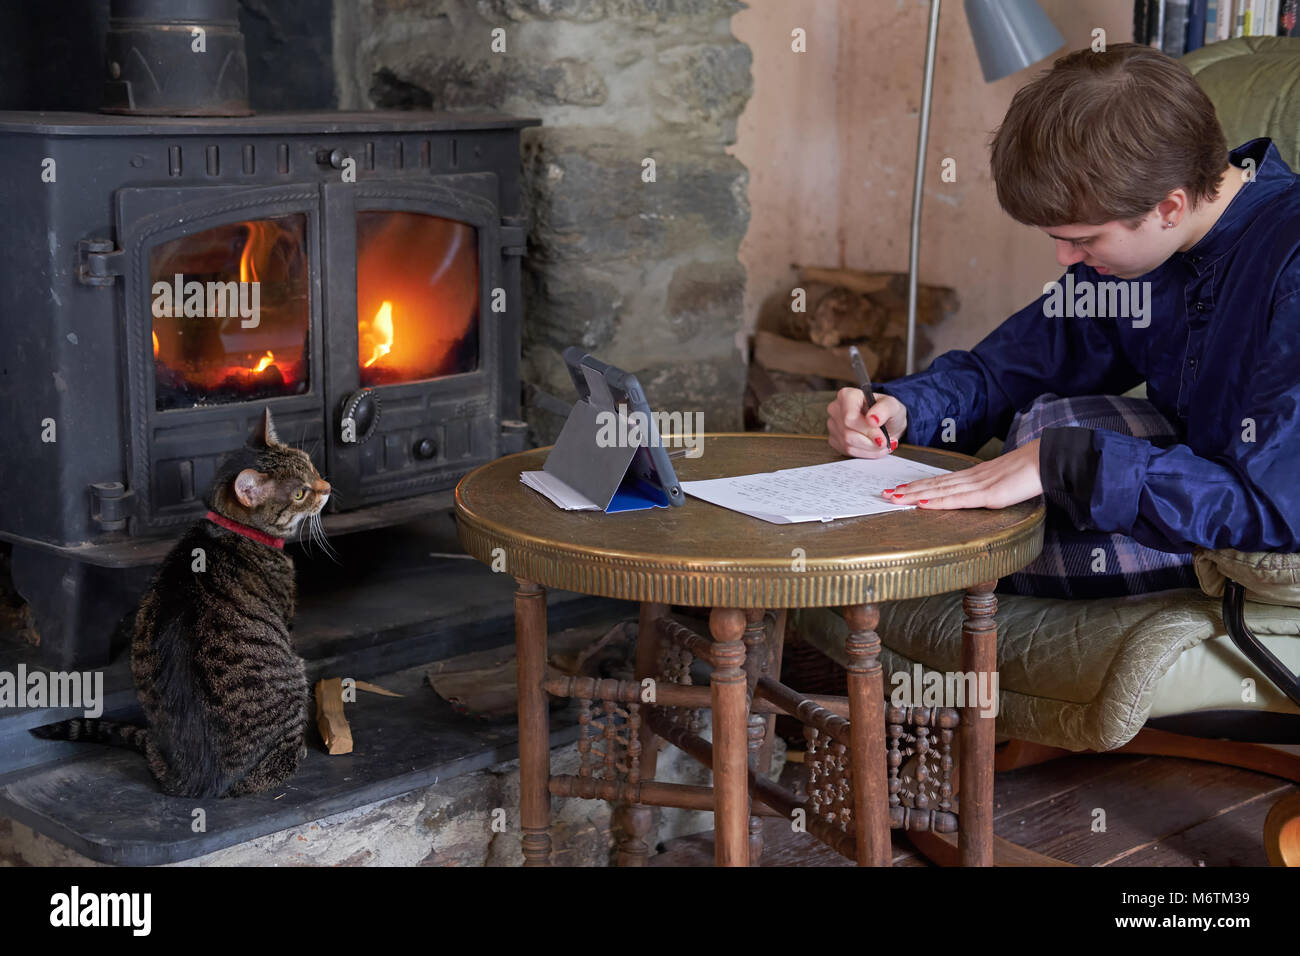 A teenage girl studying by a fire. - Stock Image